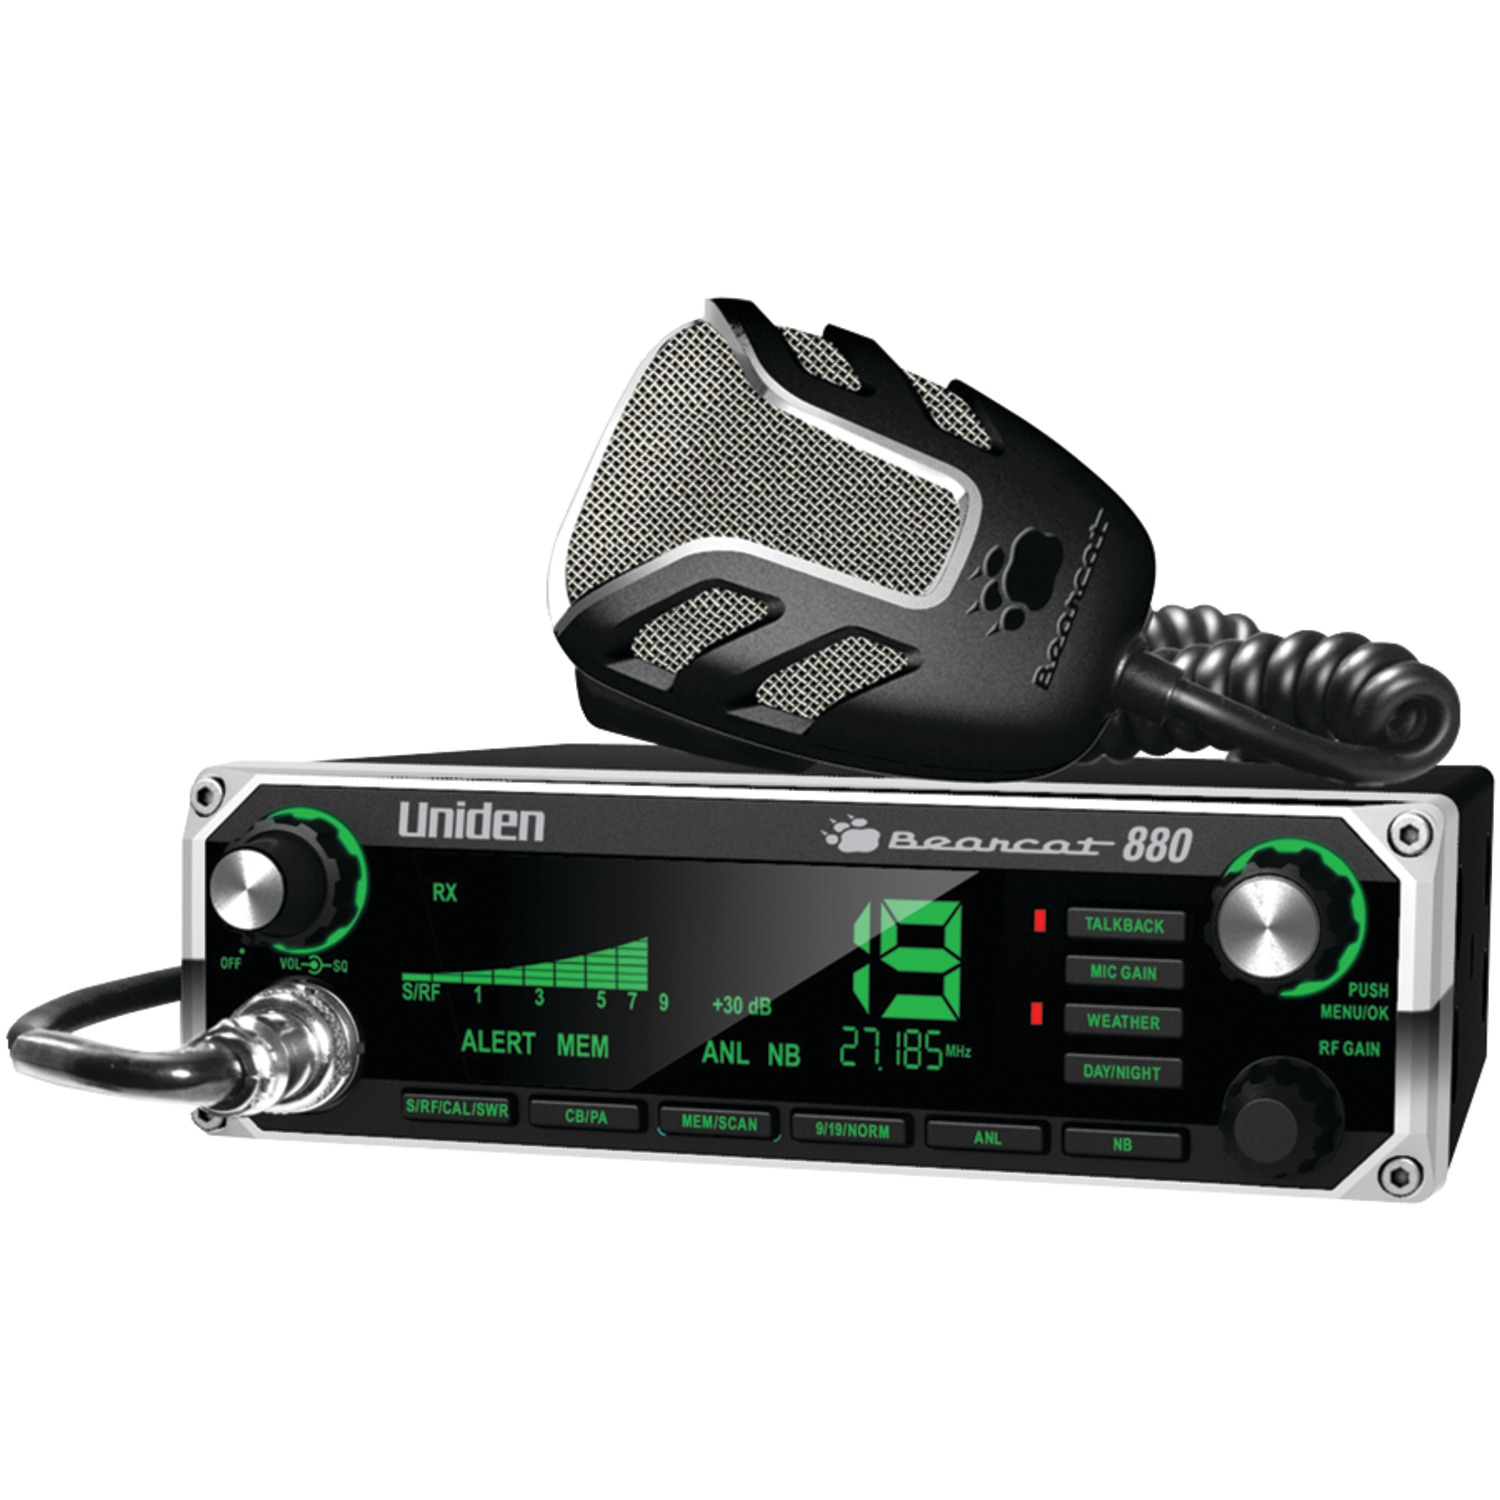 Uniden BEARCAT 880 40-Channel Bearcat 880 CB Radio with 7-Color Display Backlighting